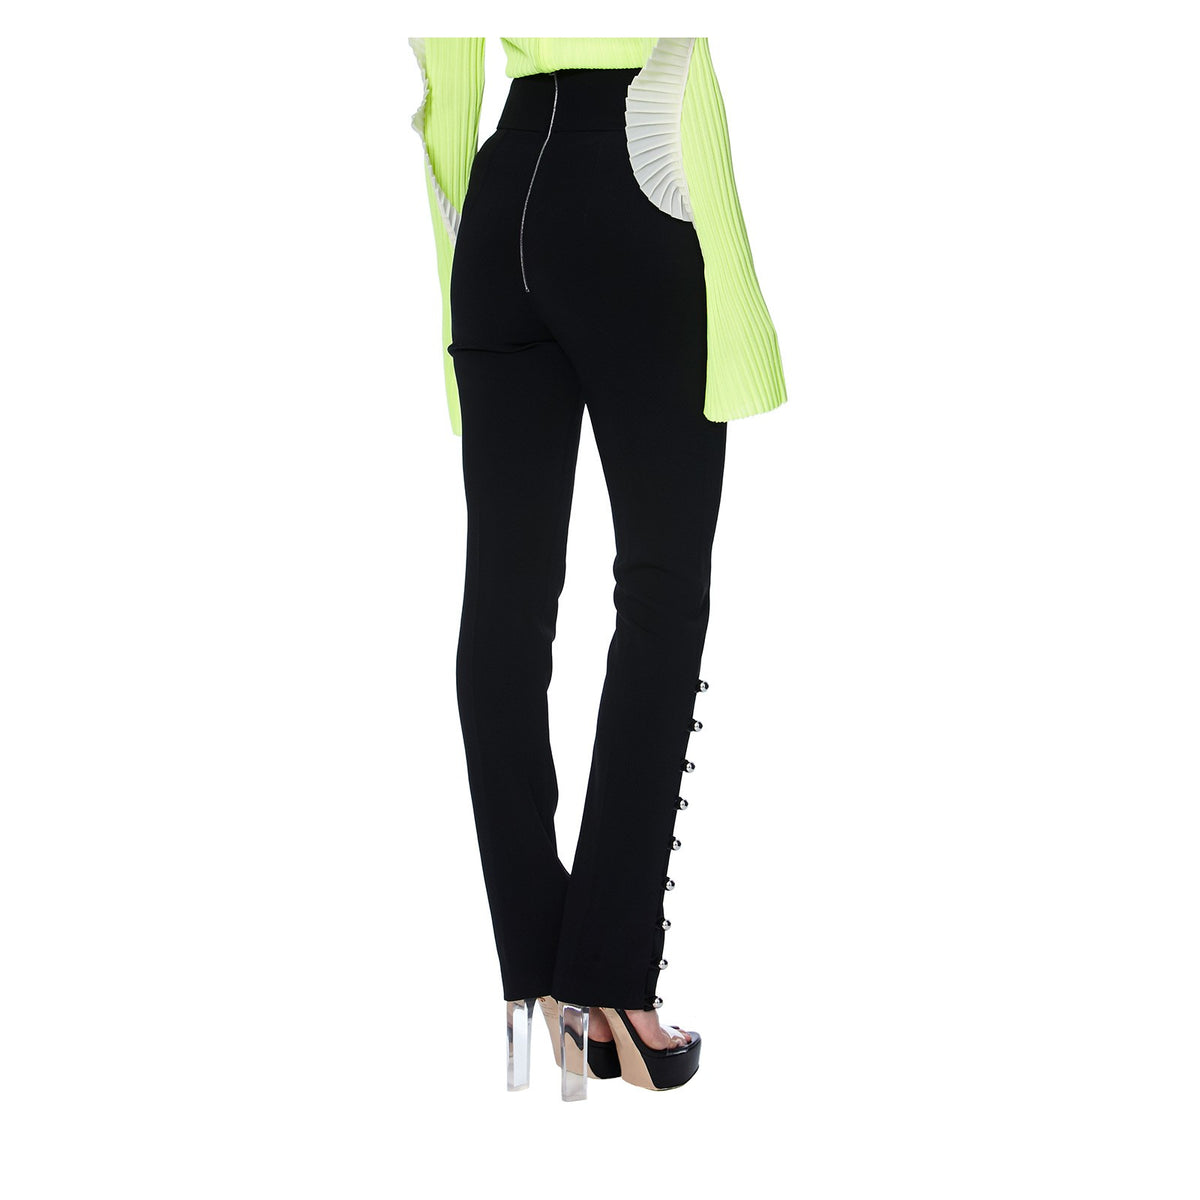 CADY HIGH-WAISTED TROUSERS -BACK VIEW- THE BOX BOUTIQUE